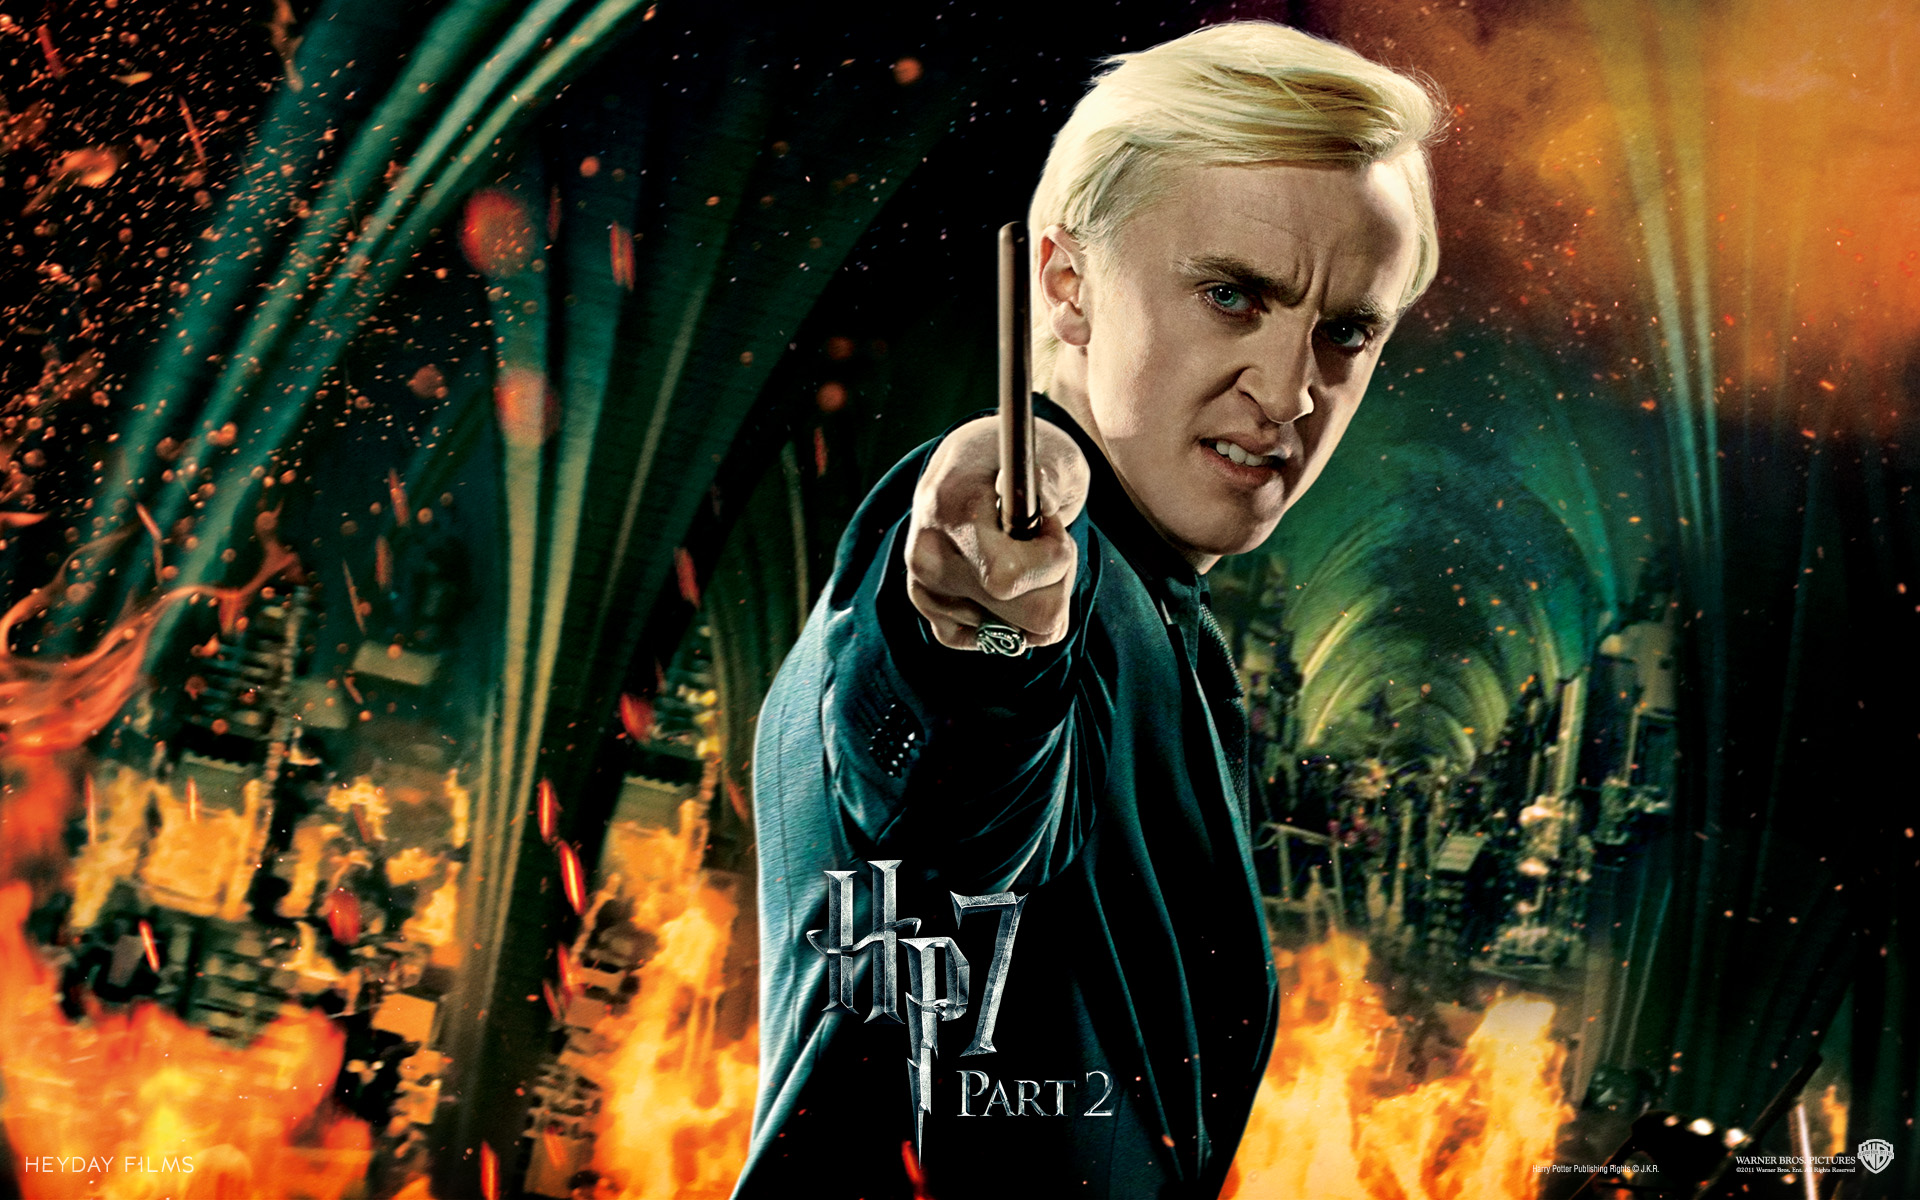 Harry Potter And The Deathly Hallows Draco Malfoy - HD Wallpaper